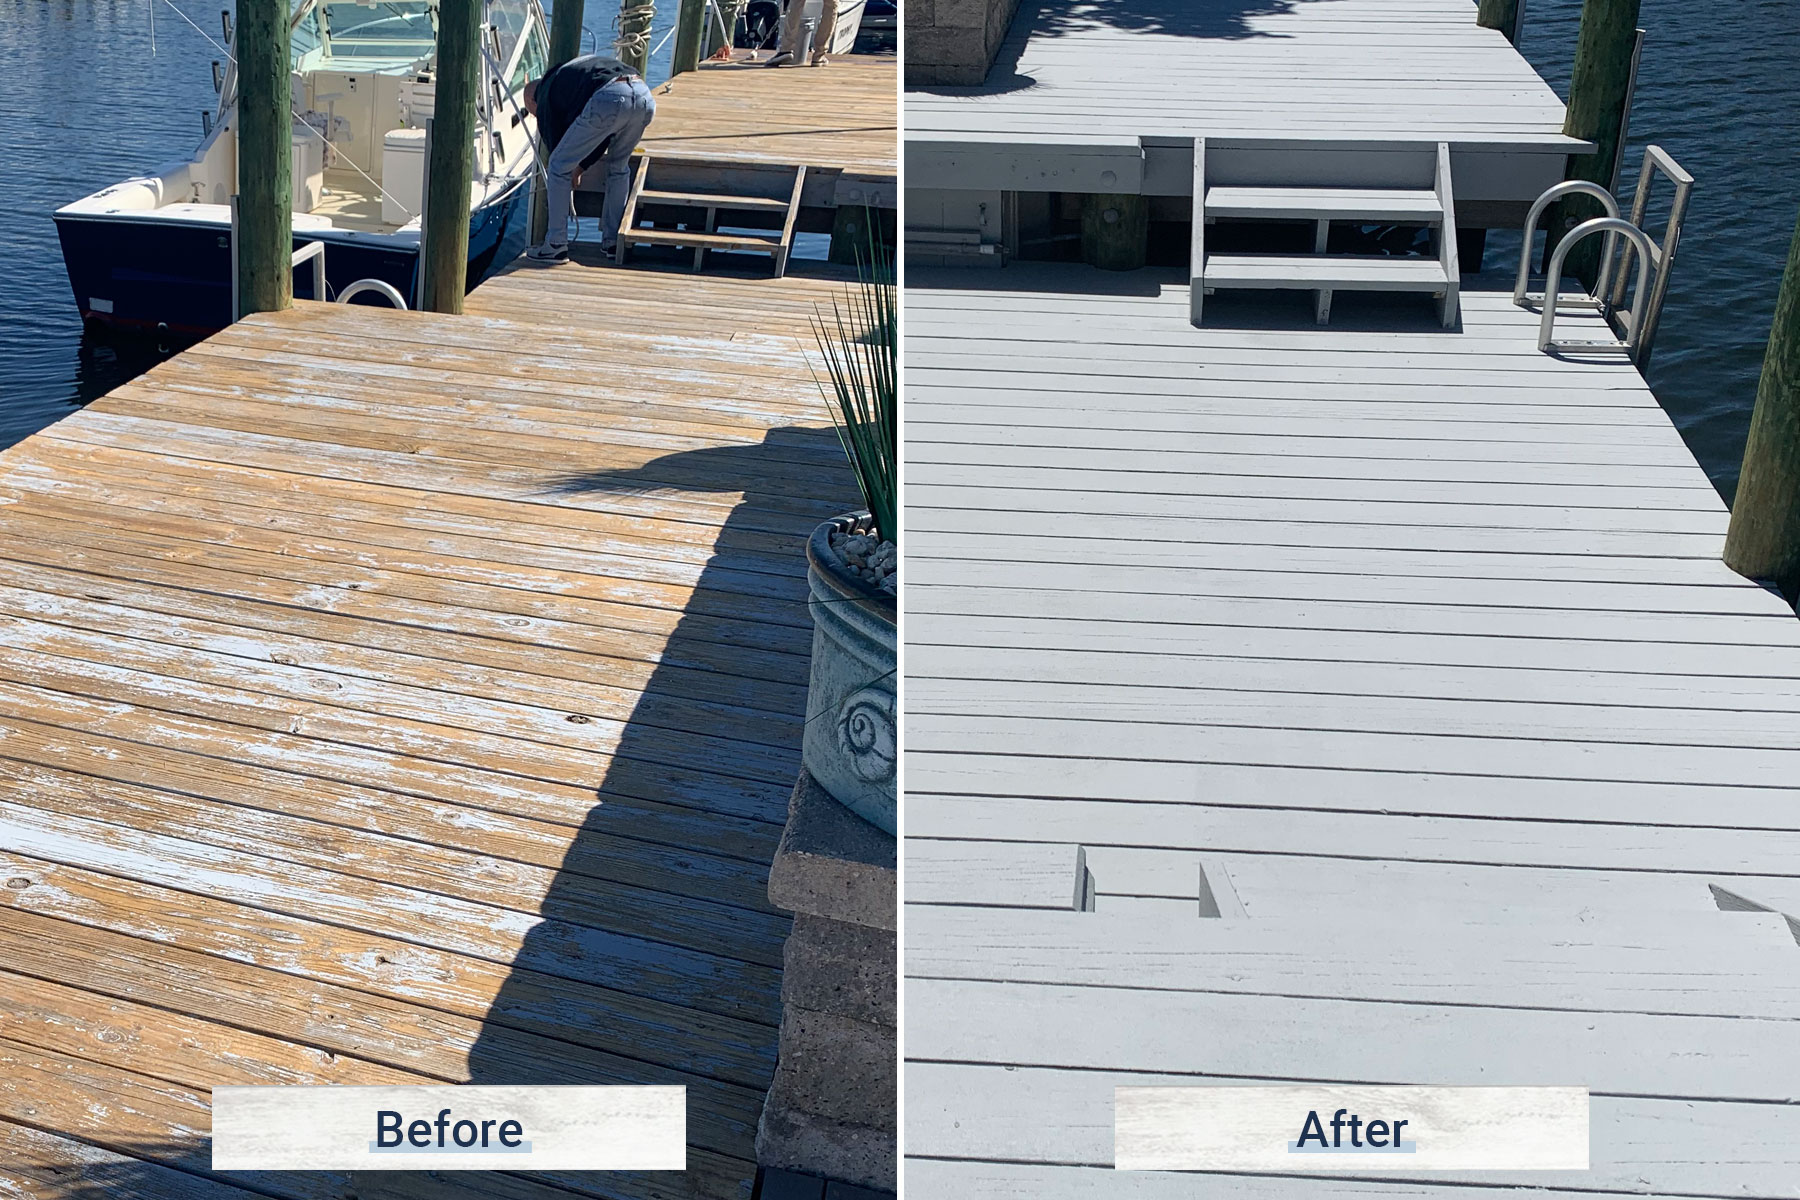 dock 5 before and after